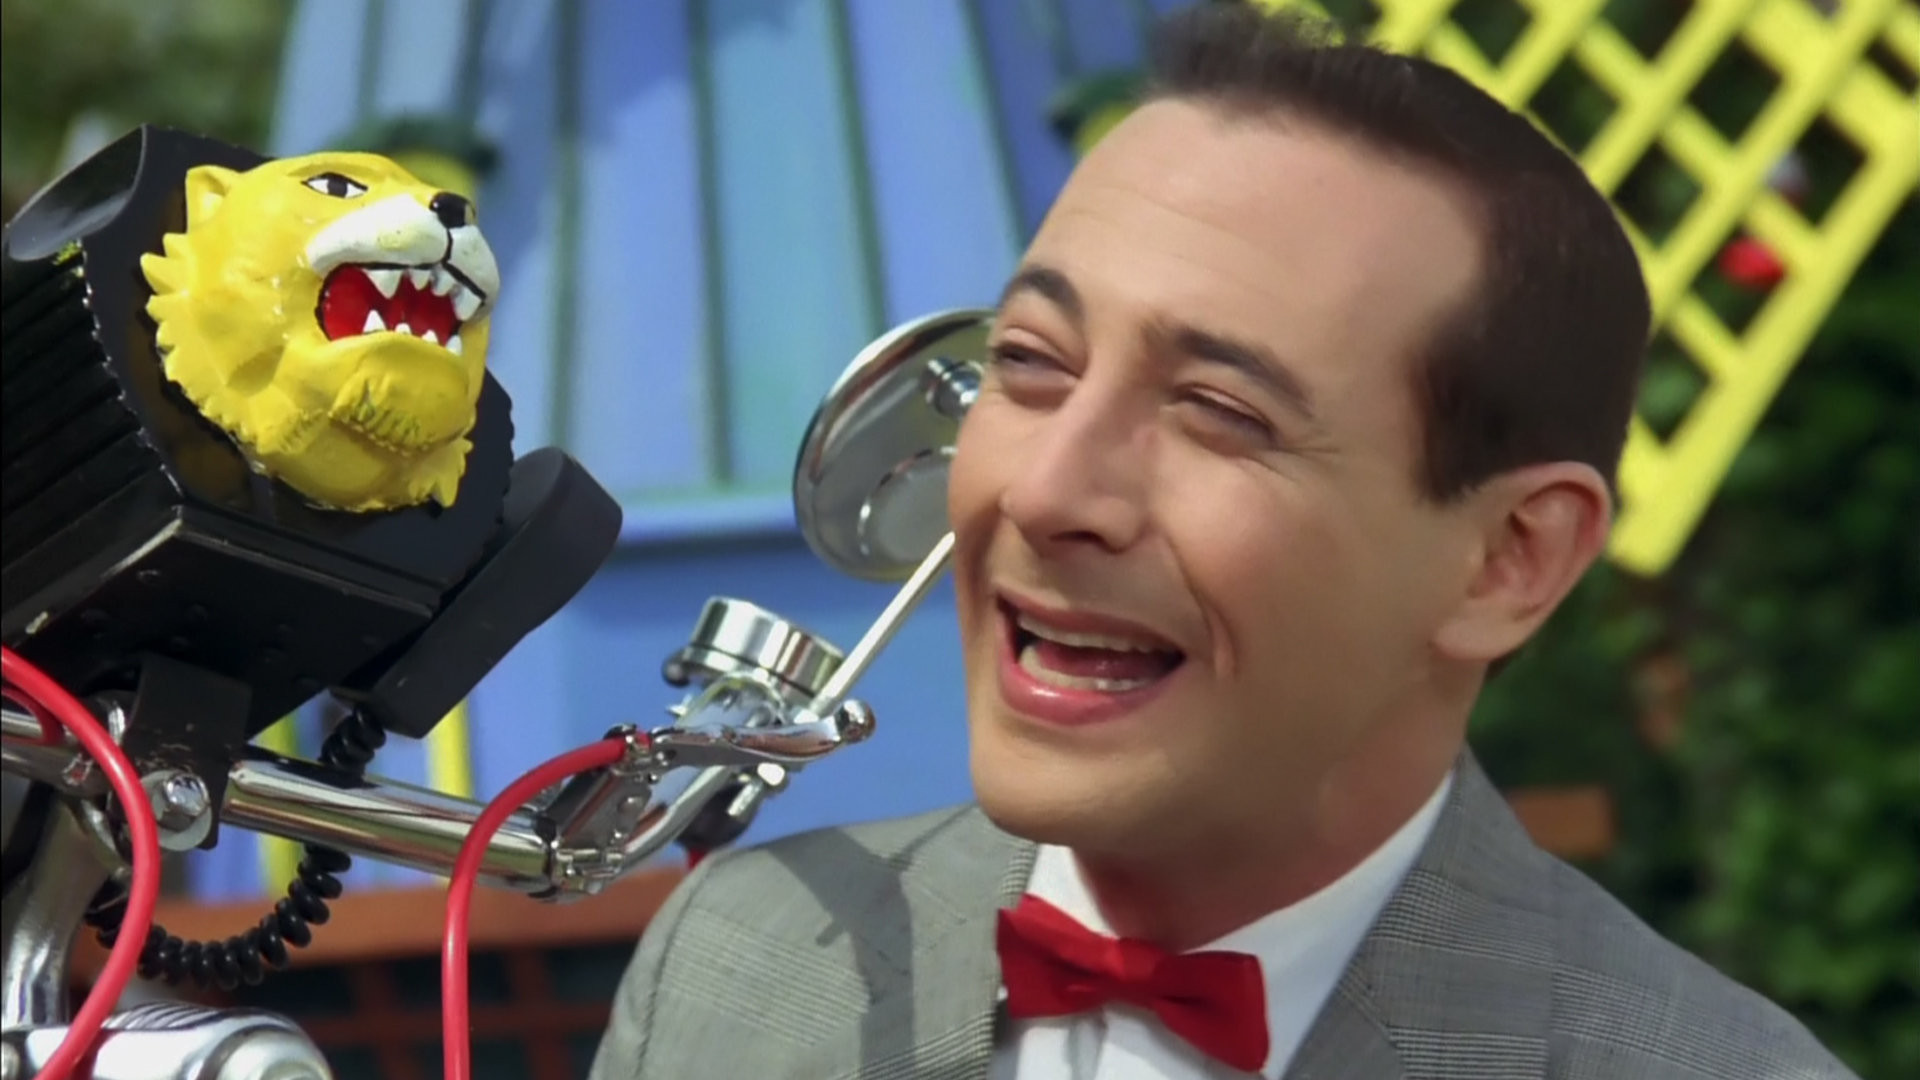 Pee Wee with Bike